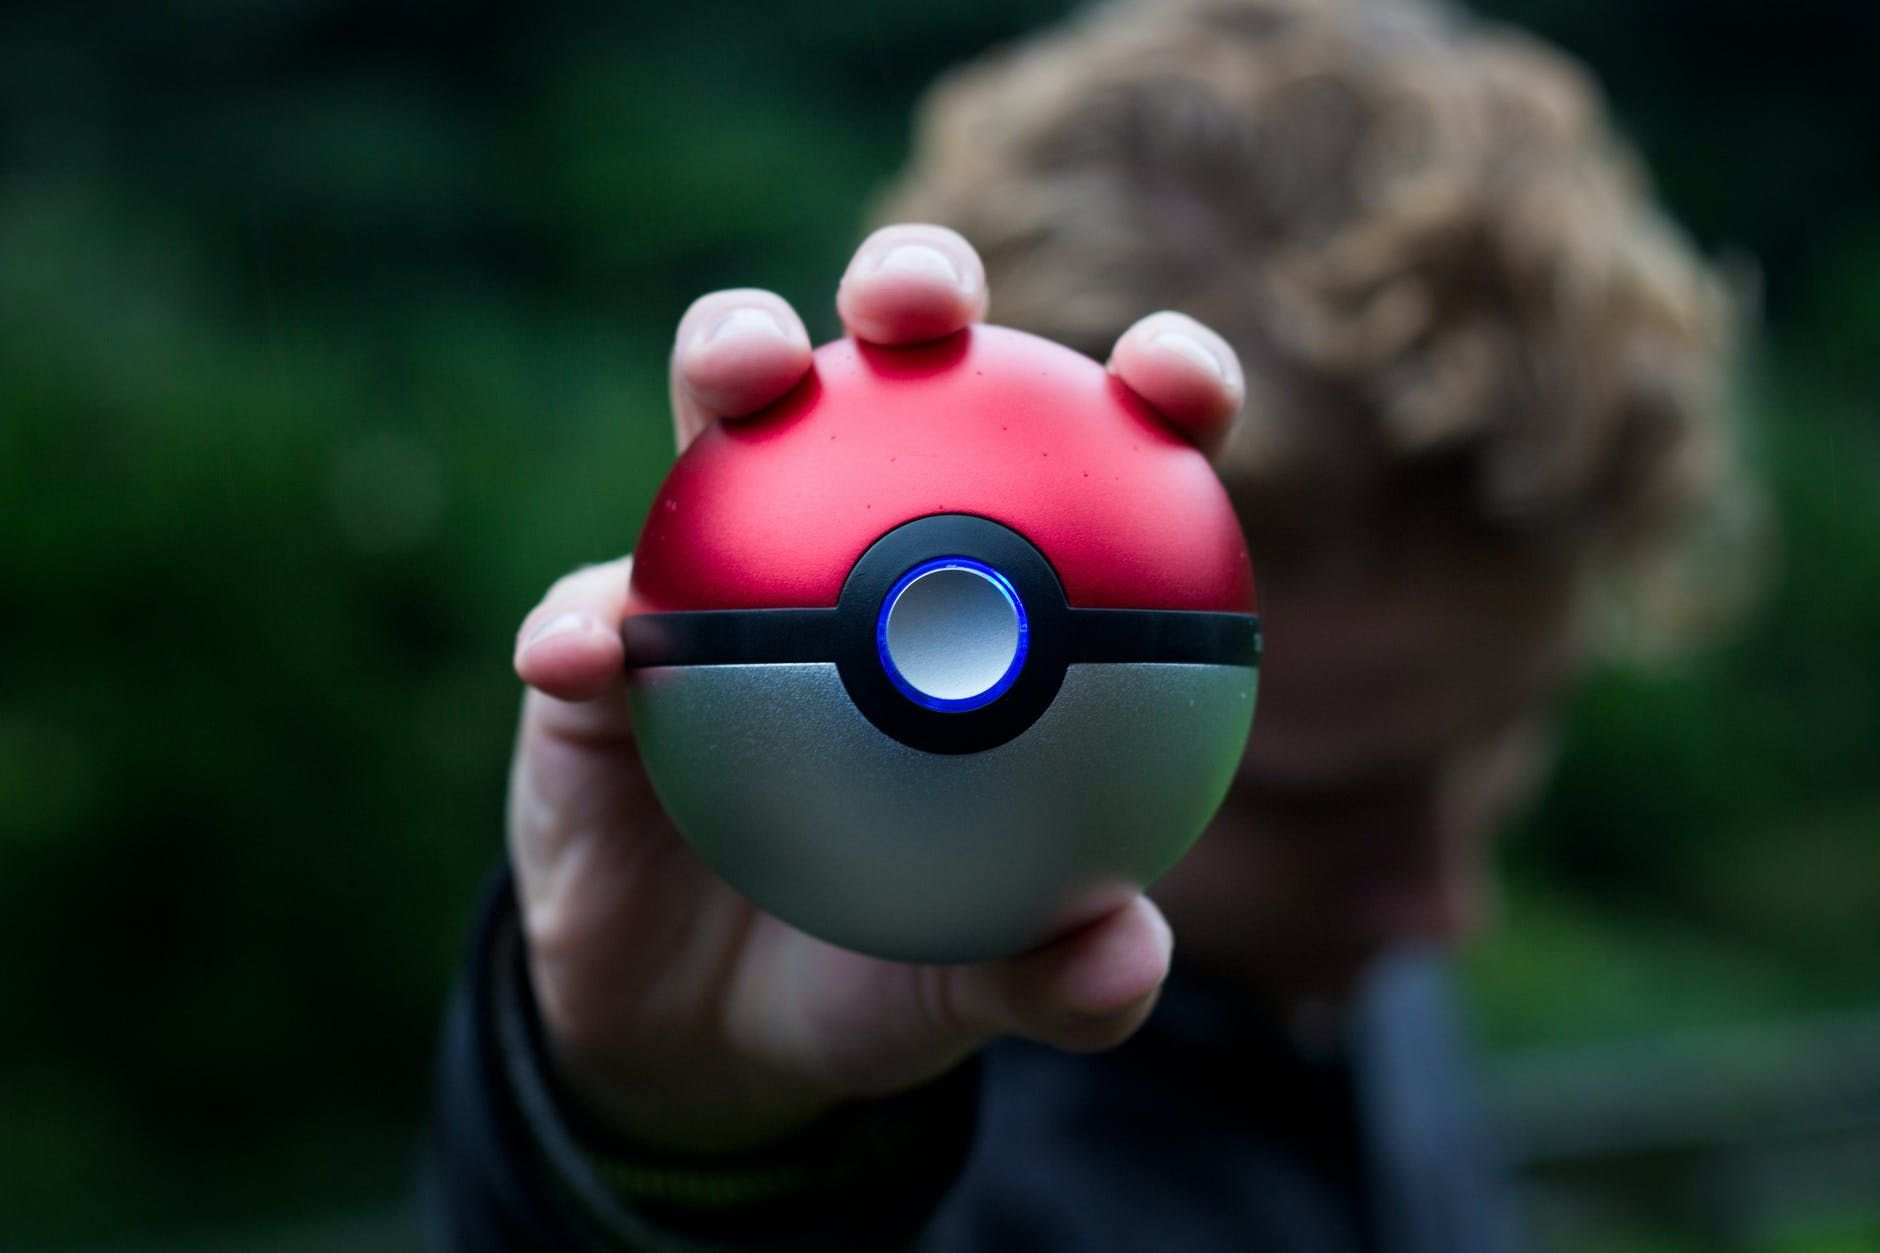 /10-best-pokemon-rom-hacks-you-can-download-for-free-lv2c37hz feature image